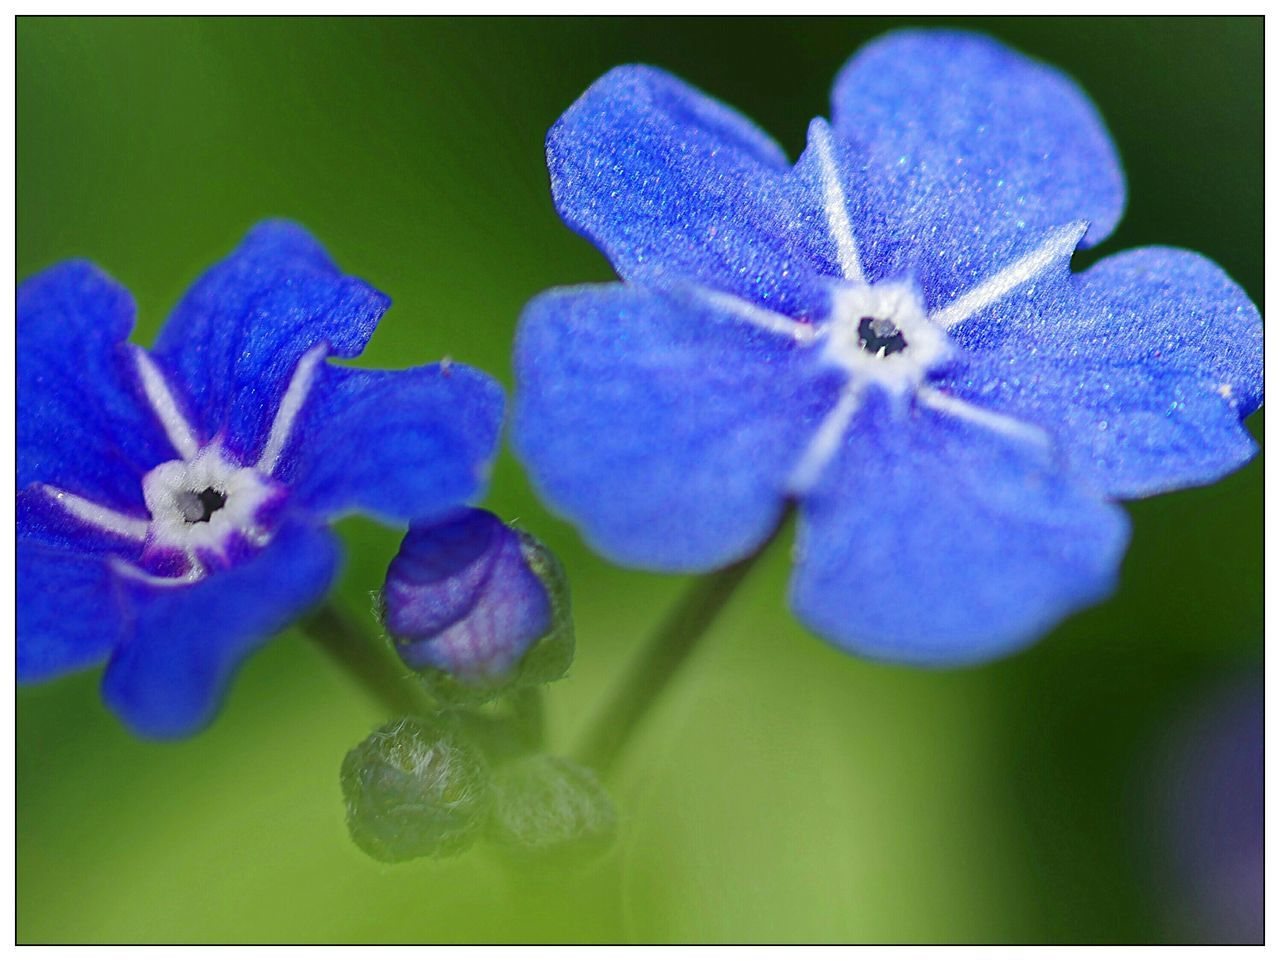 flower, purple, fragility, beauty in nature, nature, freshness, growth, close-up, blue, plant, petal, no people, flower head, day, outdoors